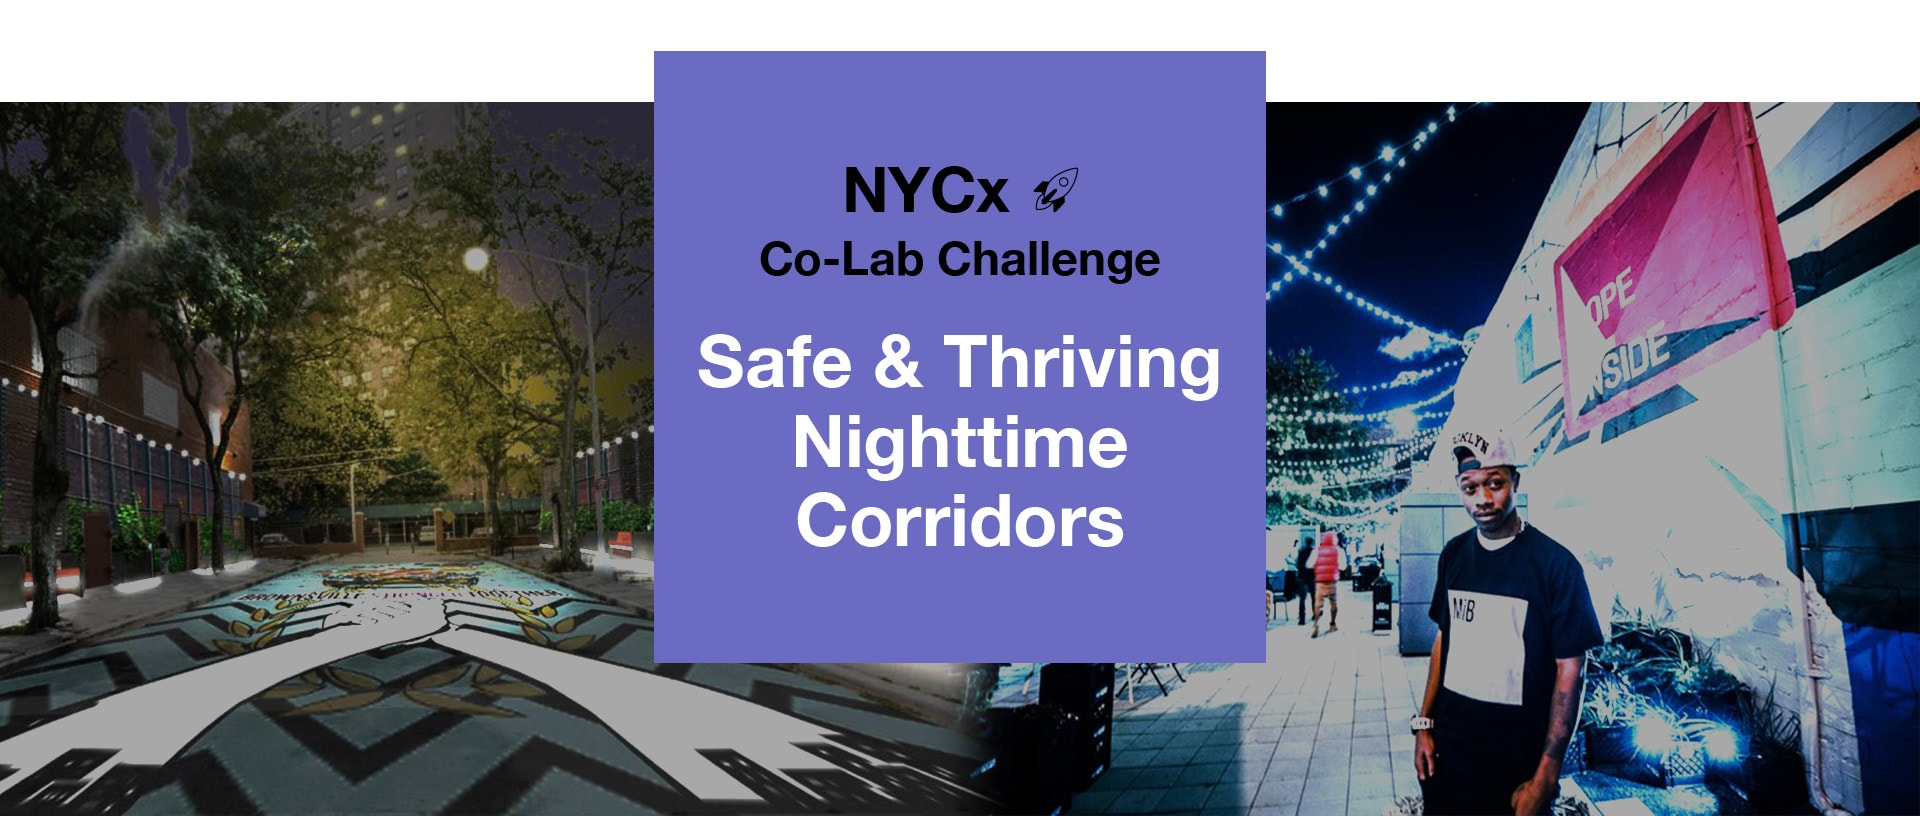 NYCx Co-Lab Challenge: Safe & Thriving Nighttime Corridors